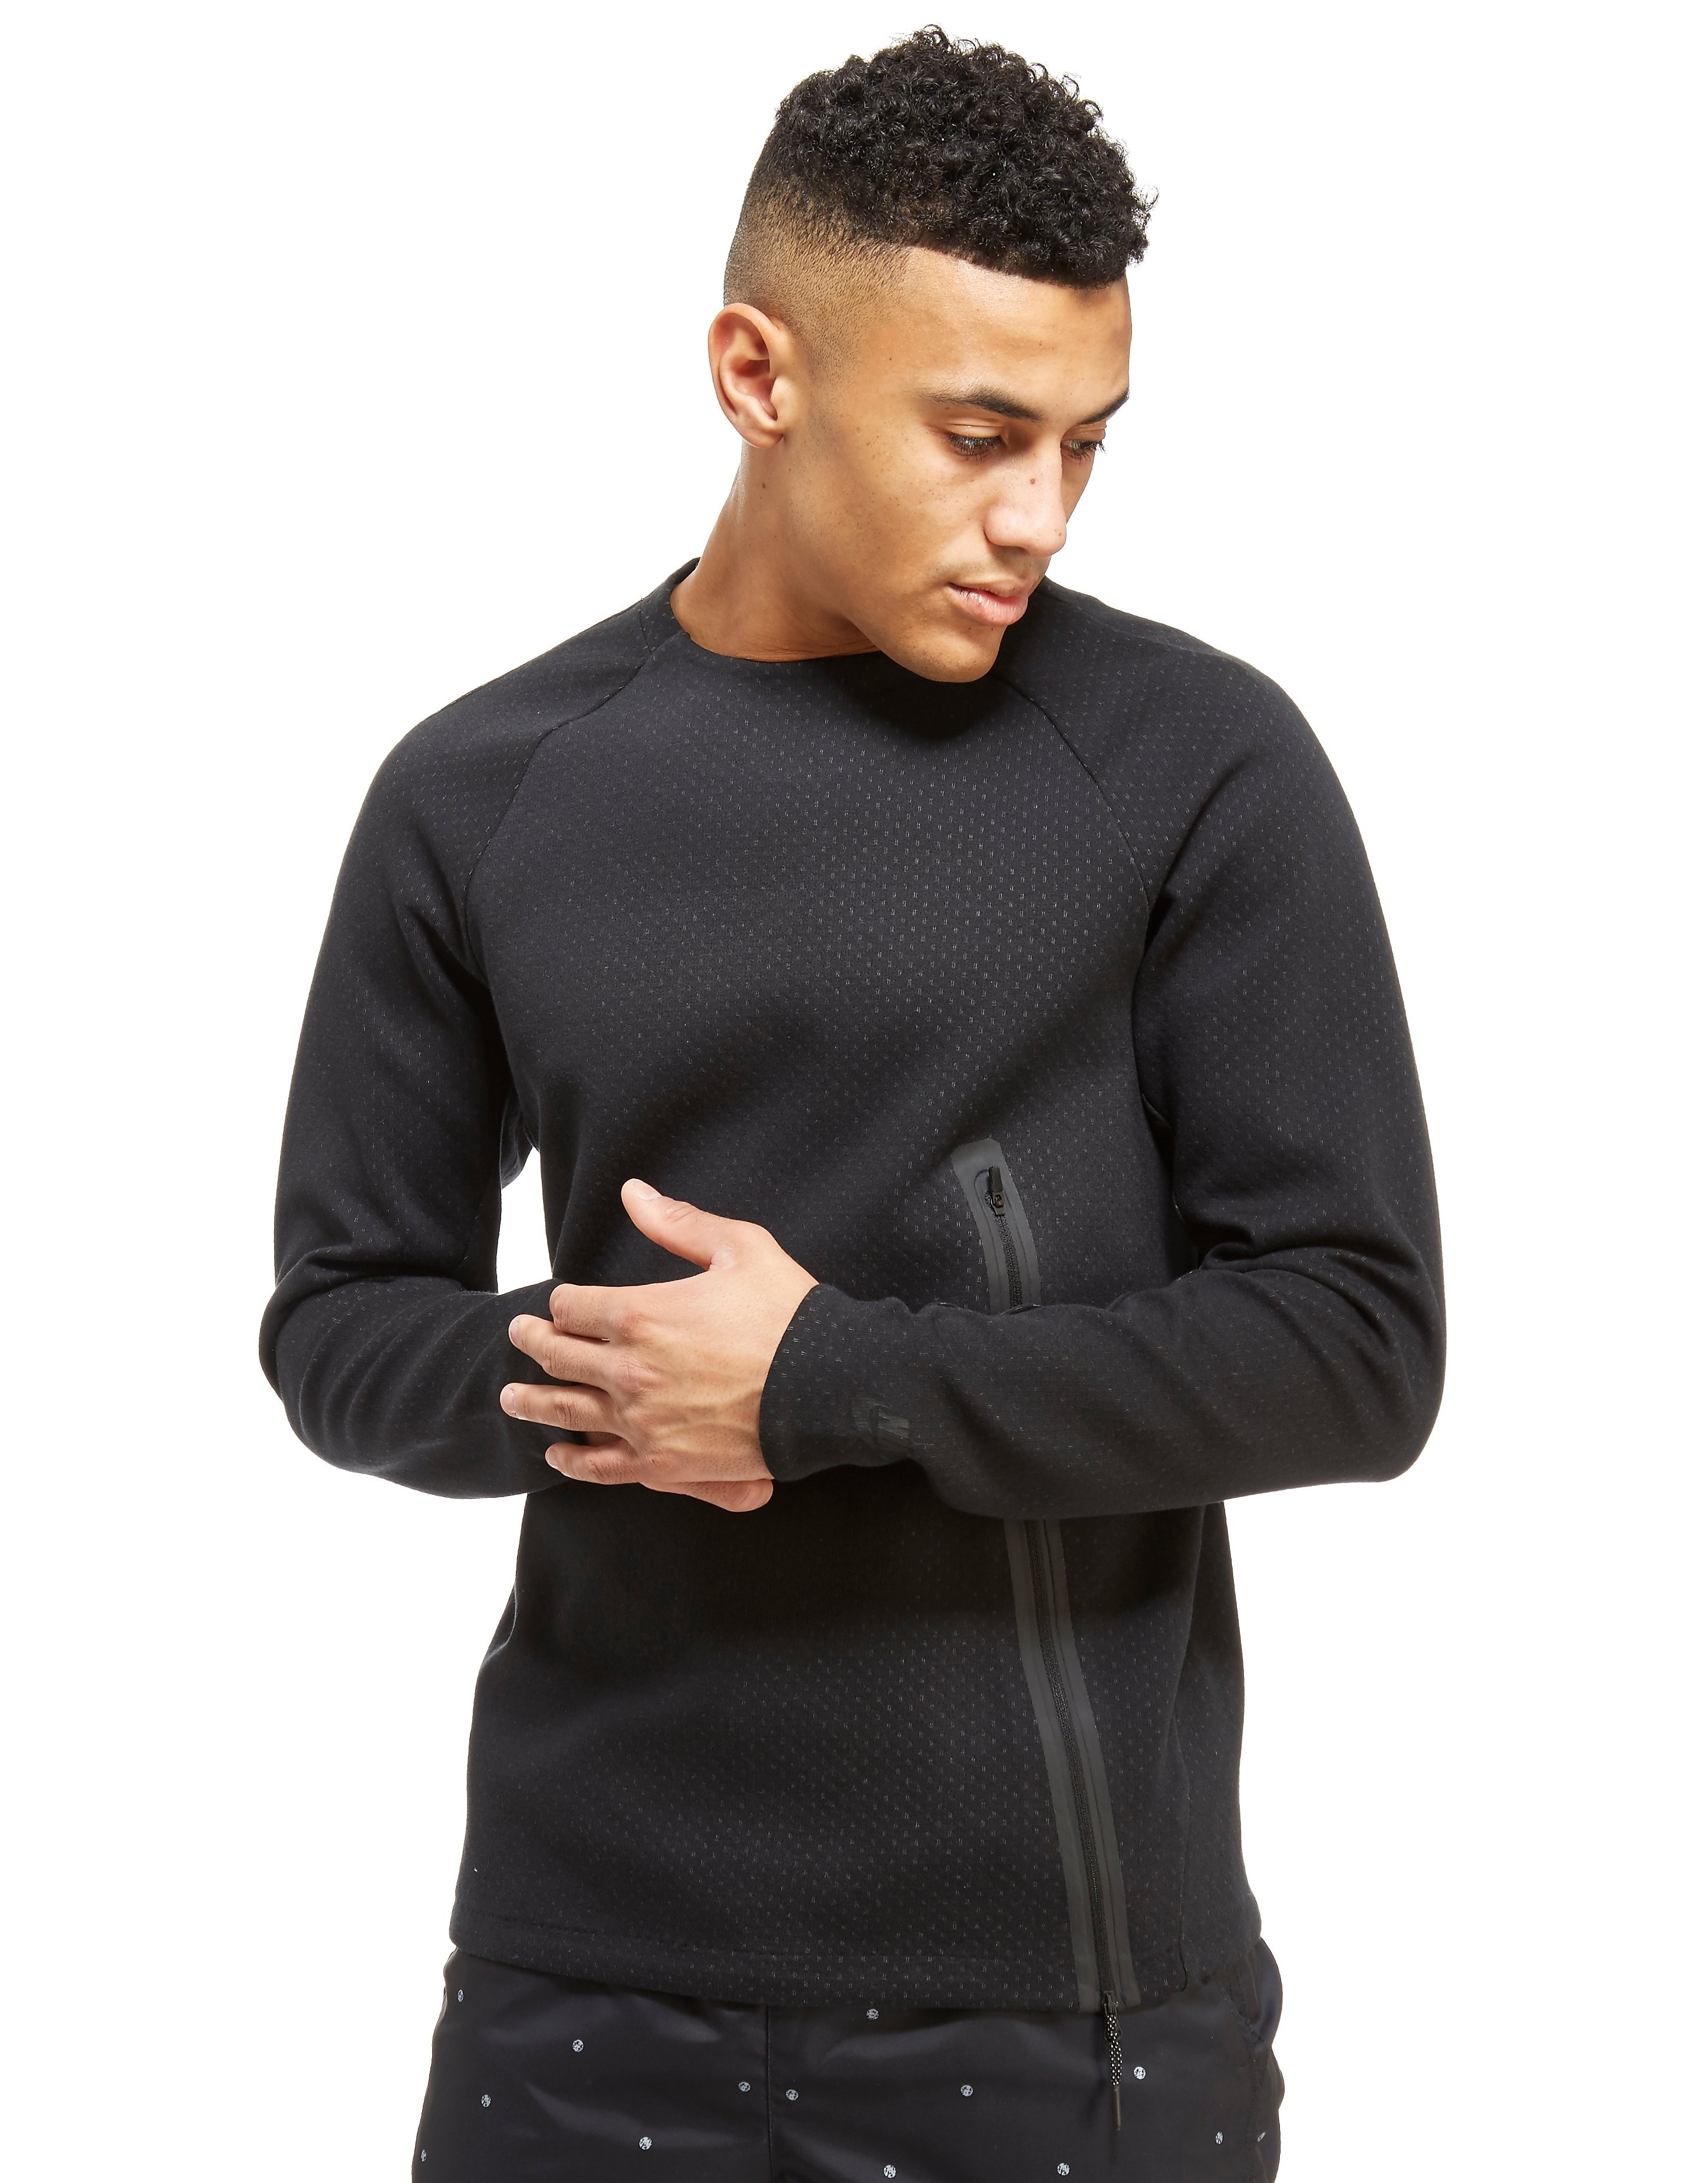 Nike Sportswear Tech Fleece Crew Sweatshirt